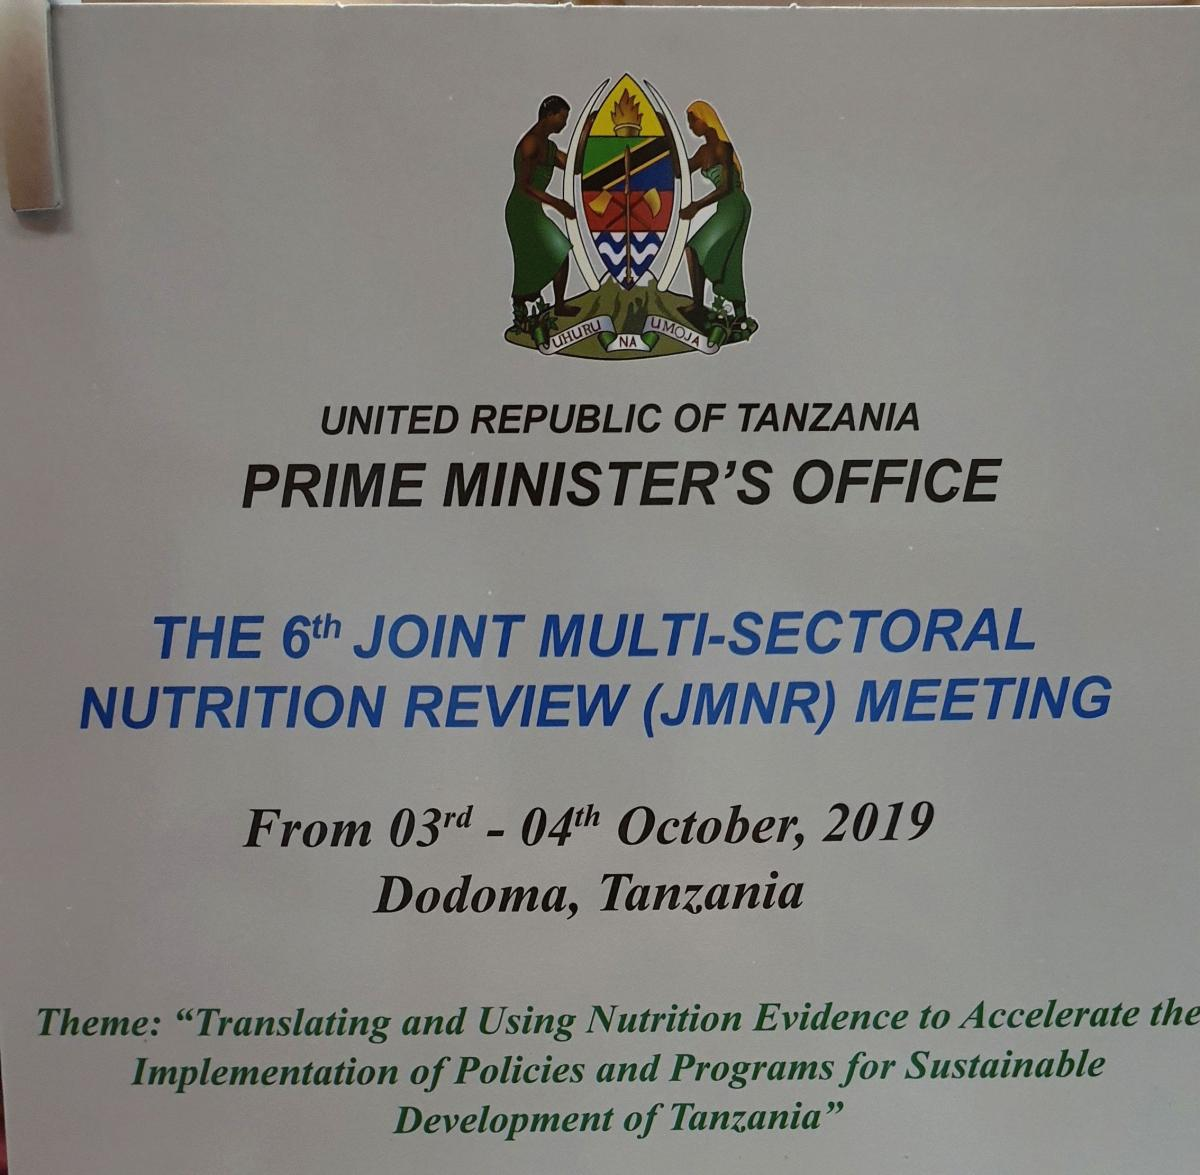 6th Joint Multisectoral Nutrition Review meeting